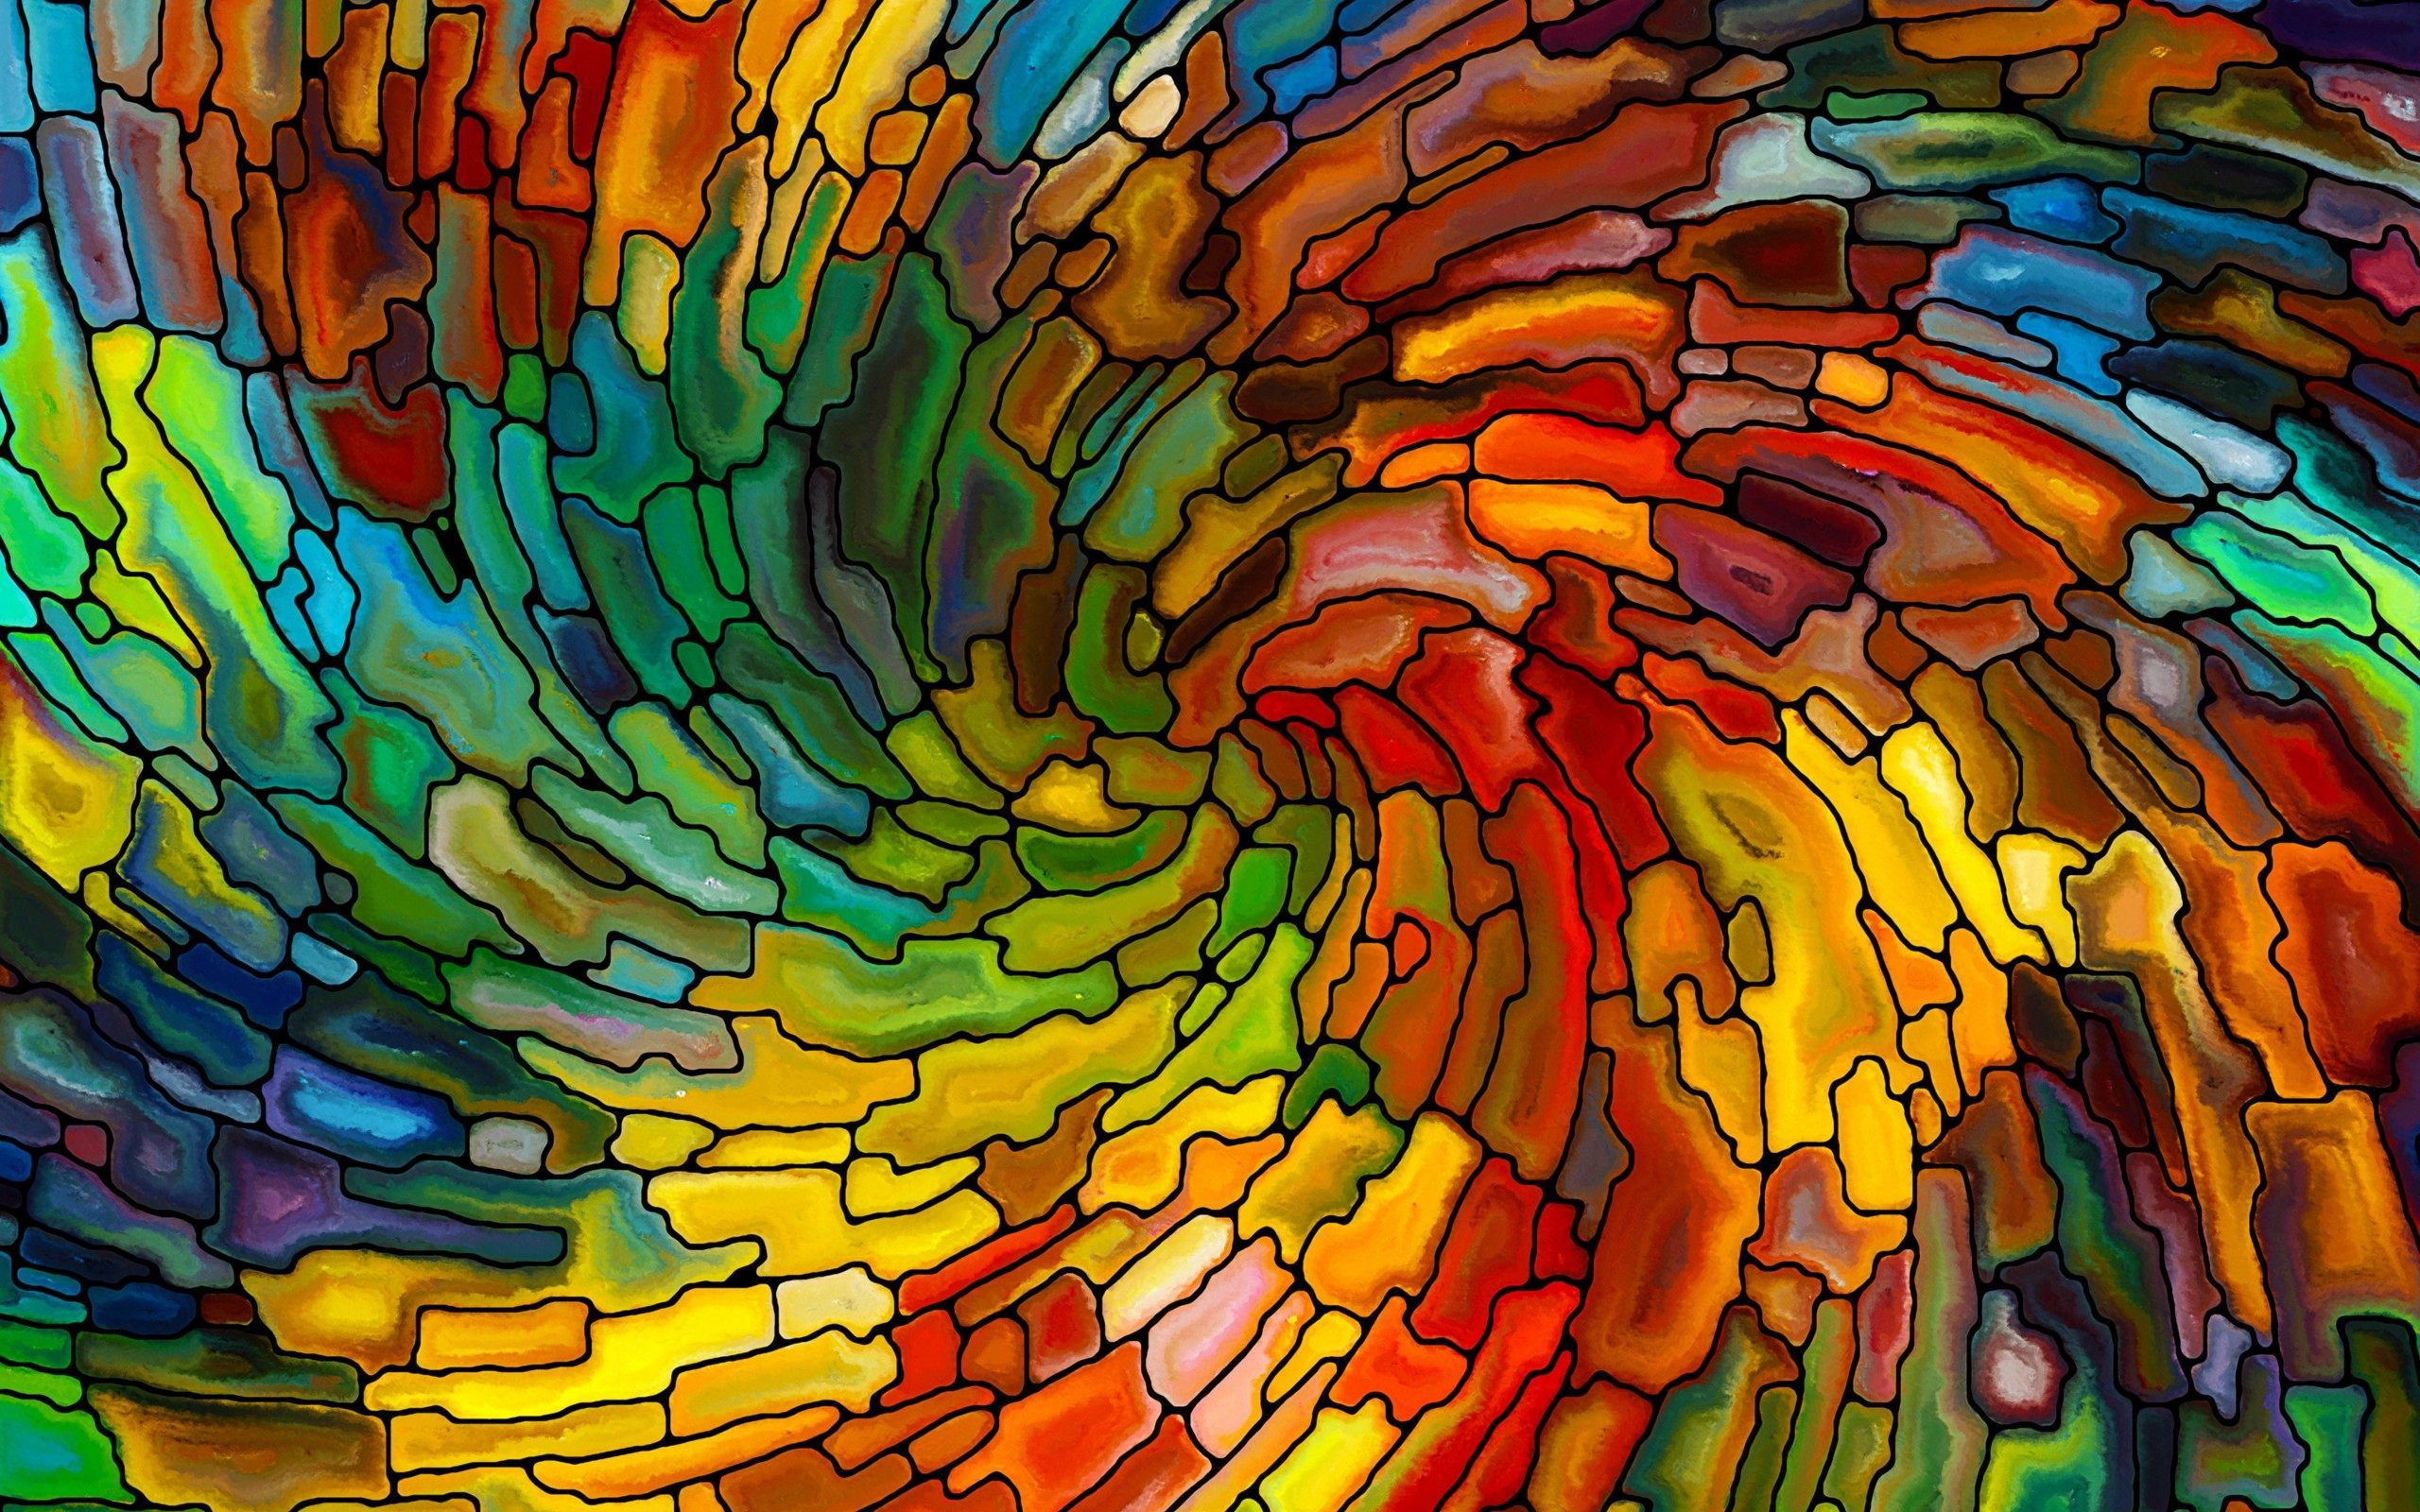 Stained Glass Patterns Colorful Wallpaper Hd For Desktop Art Stained Stained Glass Art Abstract Wallpaper